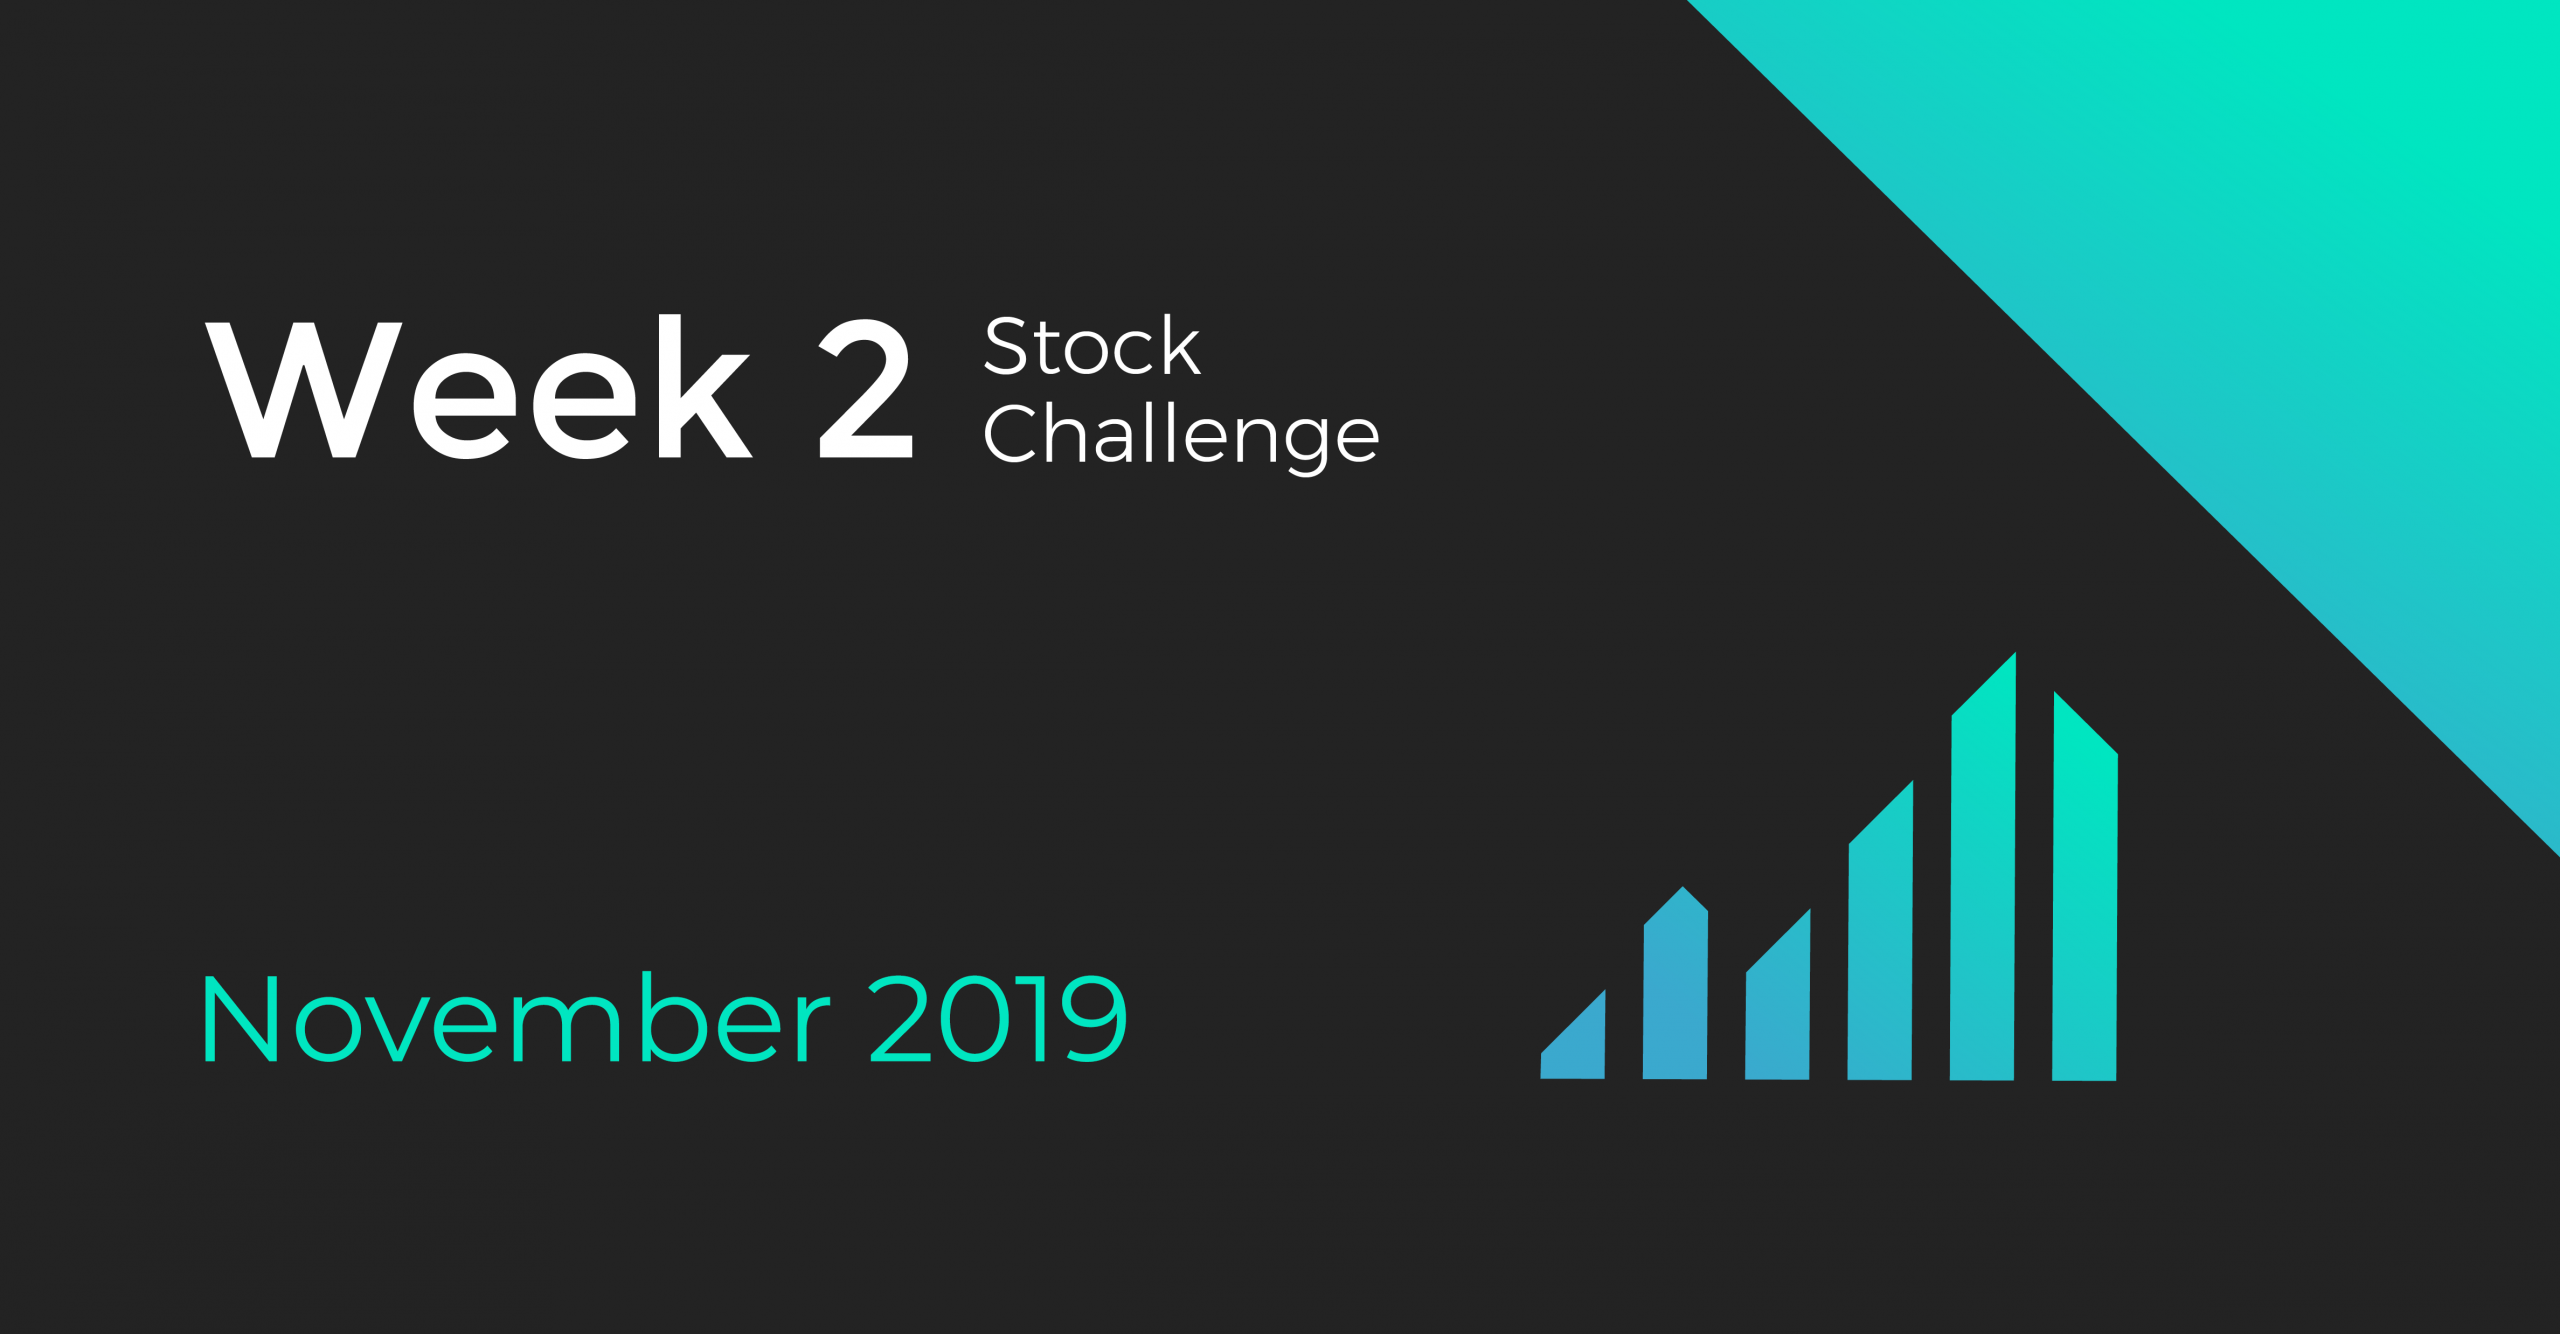 stock challenge cover for the second week of november